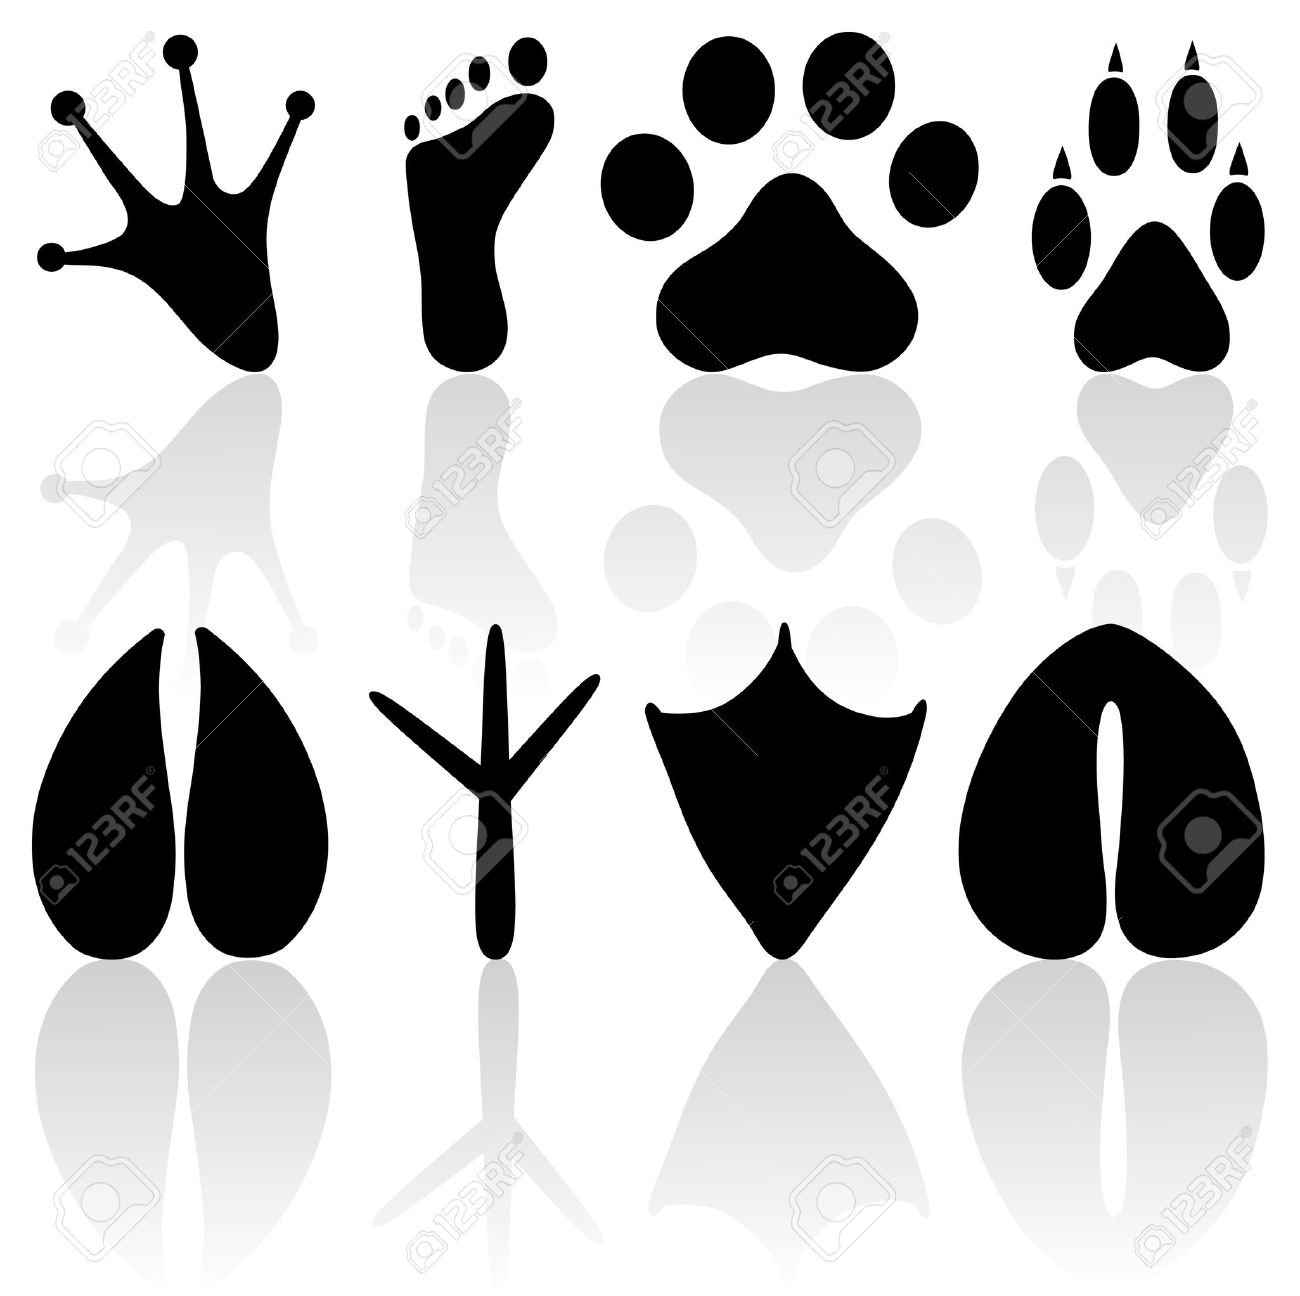 Footprint collection Stock Vector - 11295458